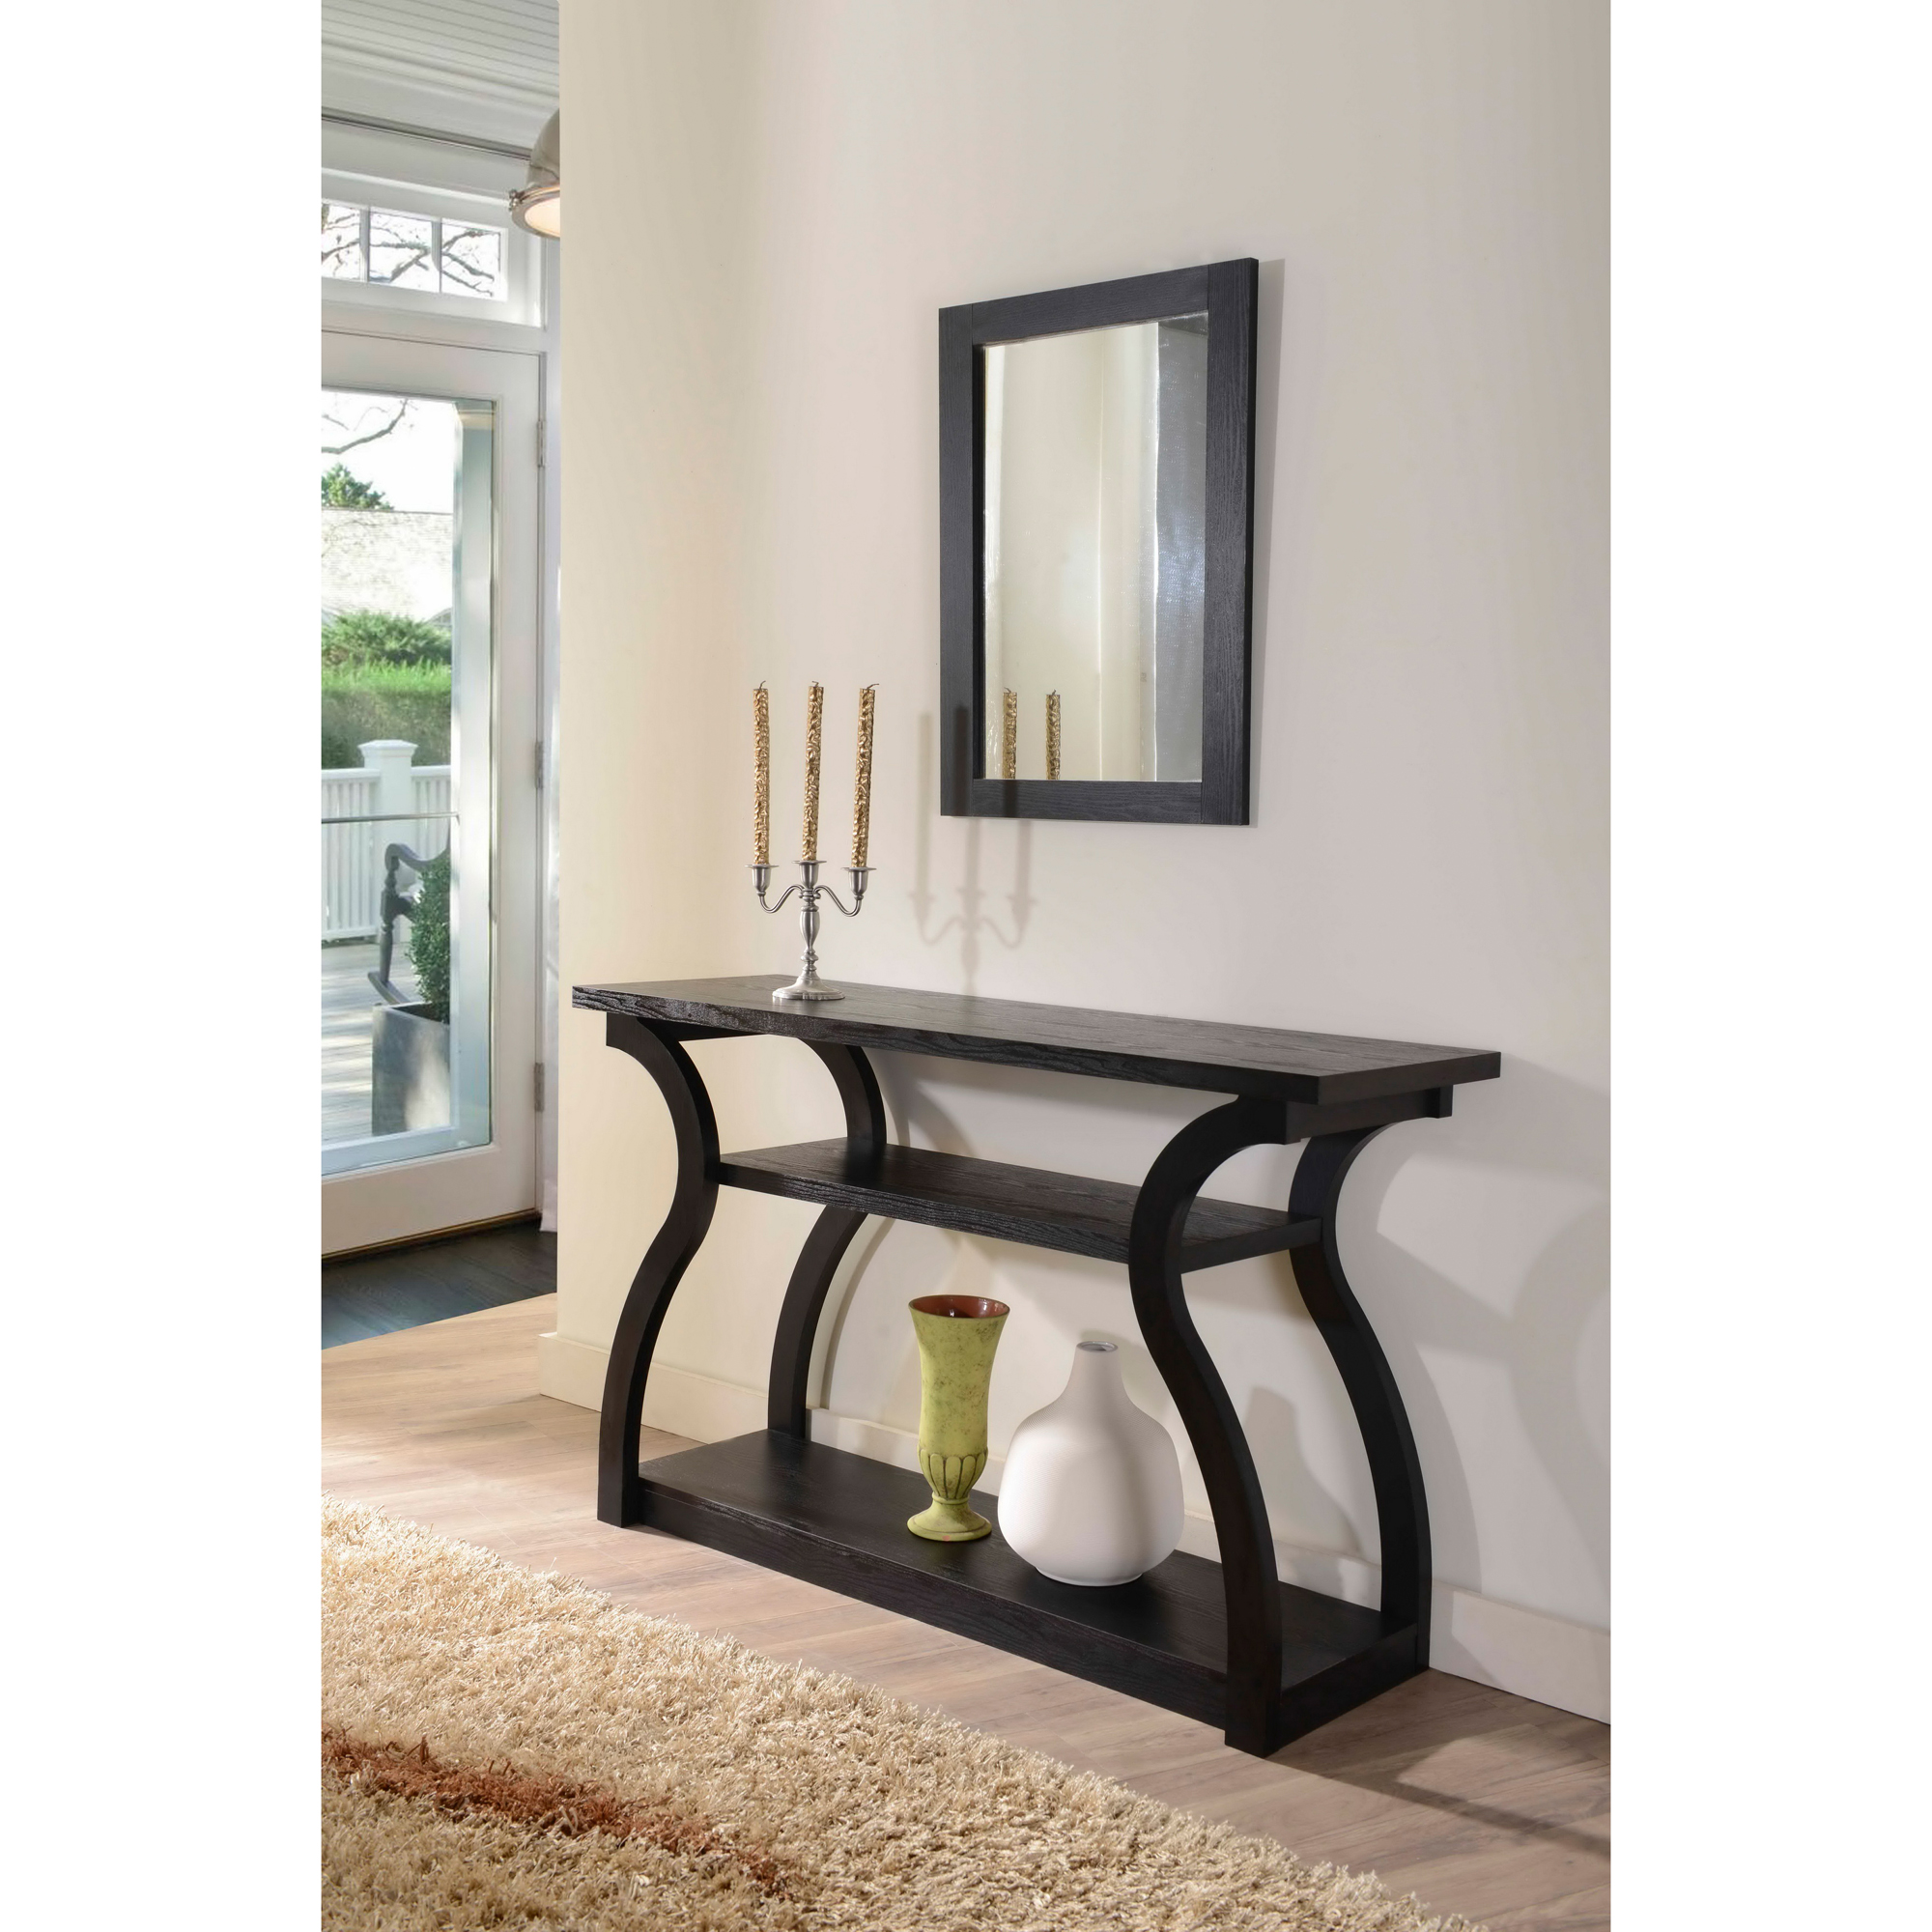 furniture simple entry table ikea design with trendy and different mud bench shoe holder behind sofa bar target console small storage skinny entryway chea accent tables folding